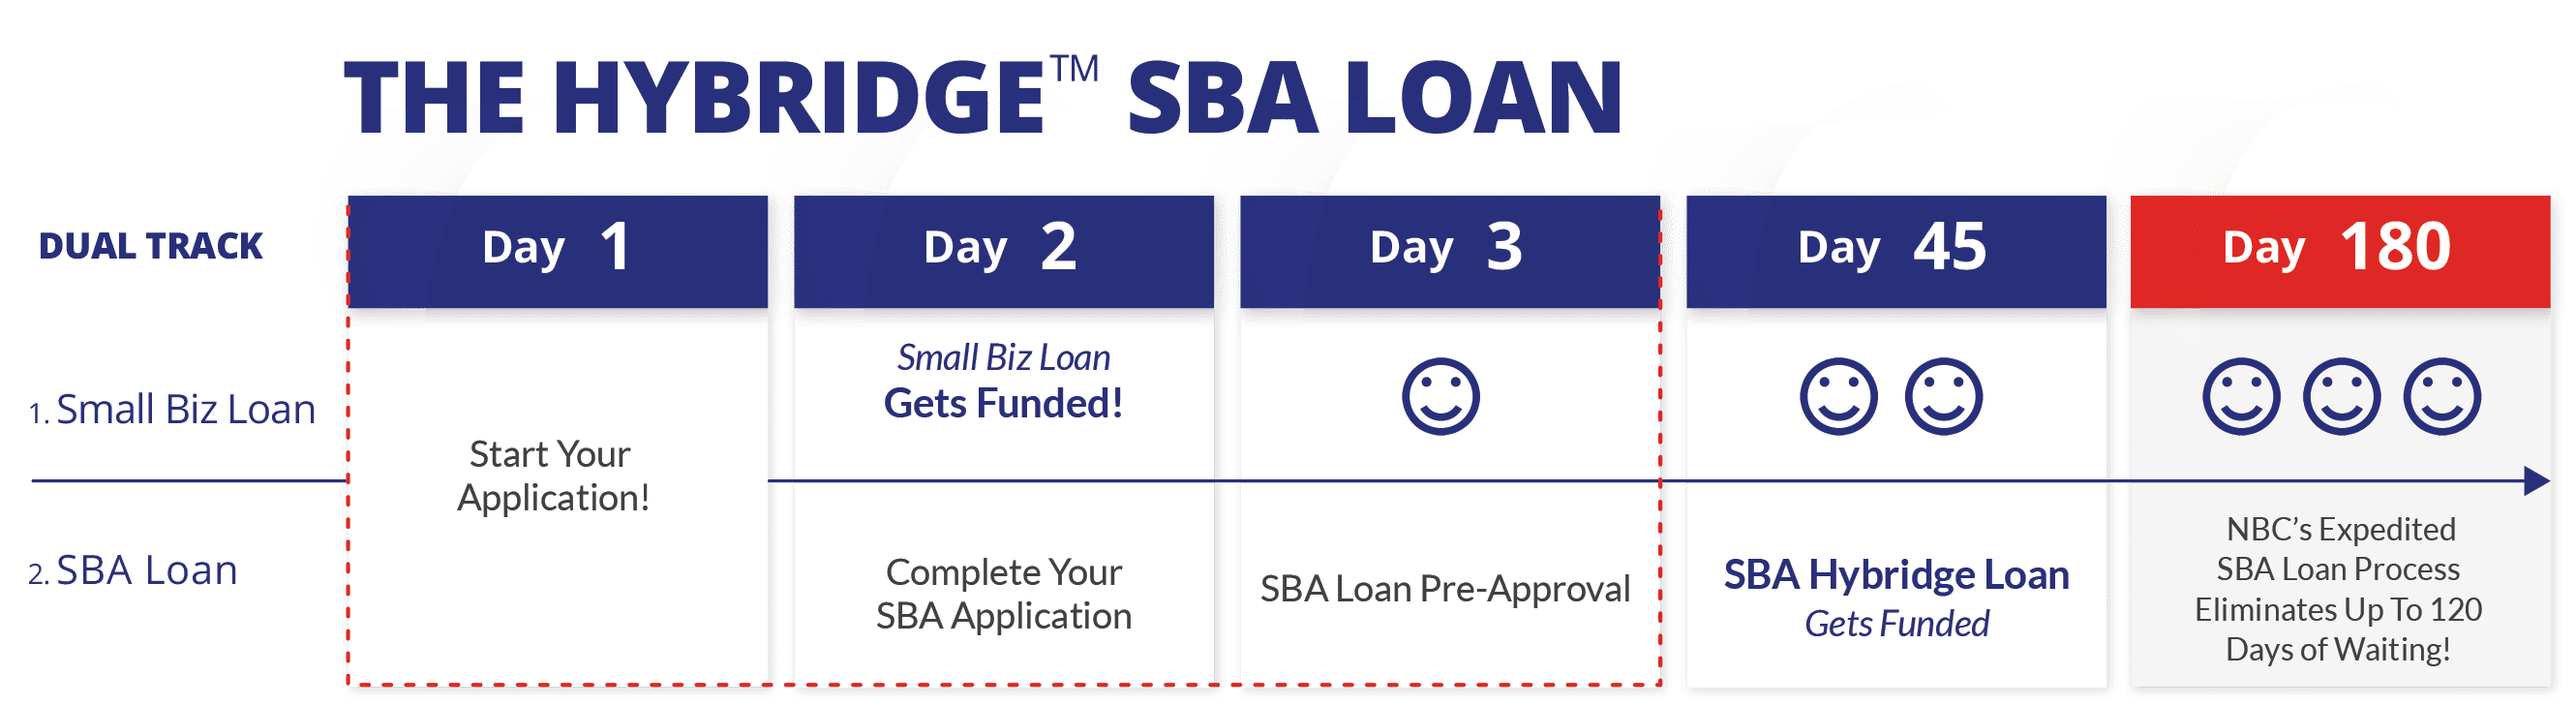 Hybridge SBA Loan Timeline